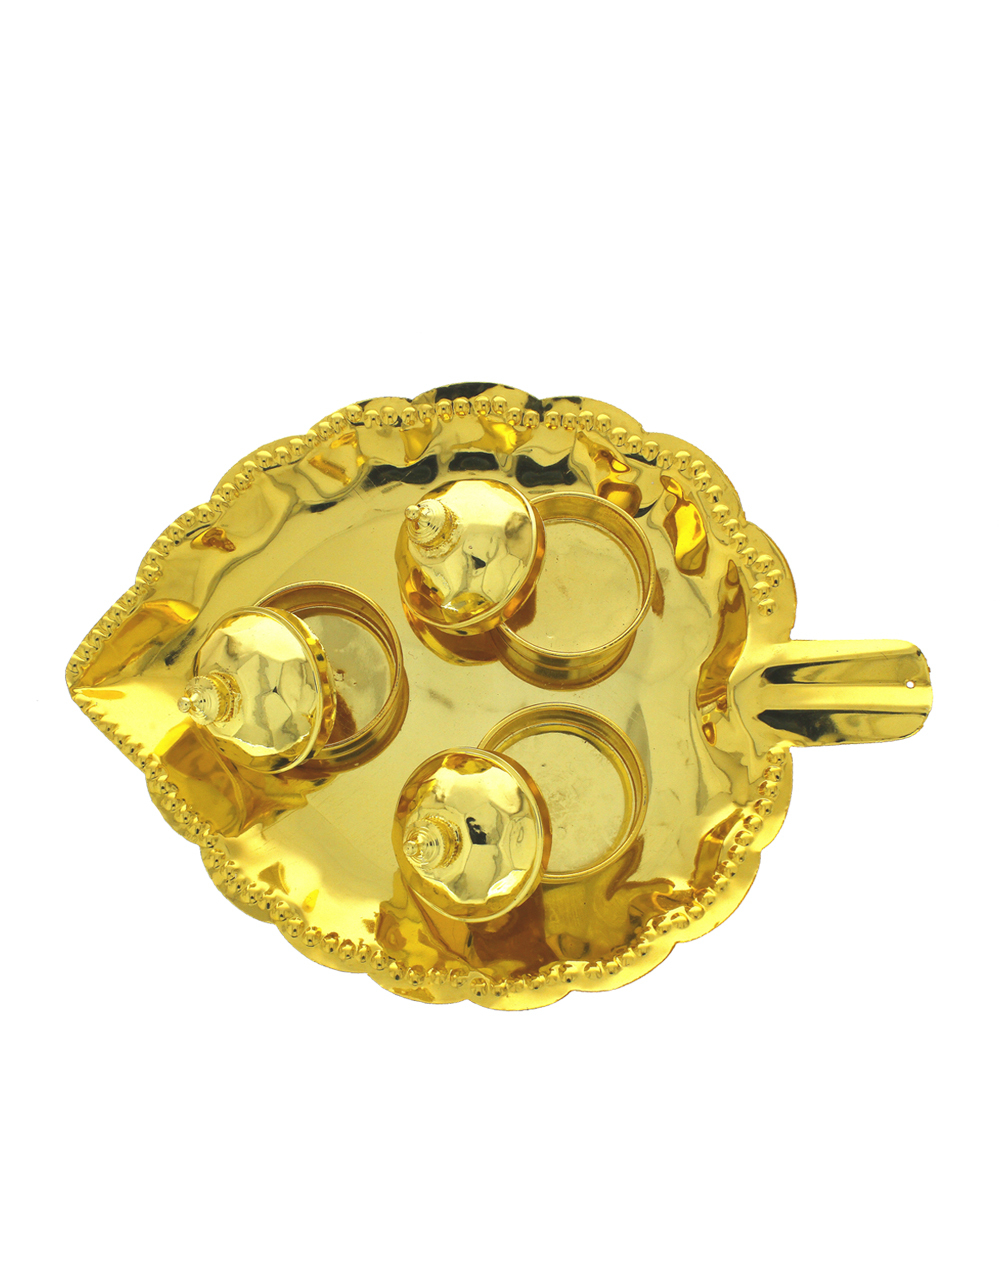 Gold Tone Simple Puja Thali For Ganesha Occasion